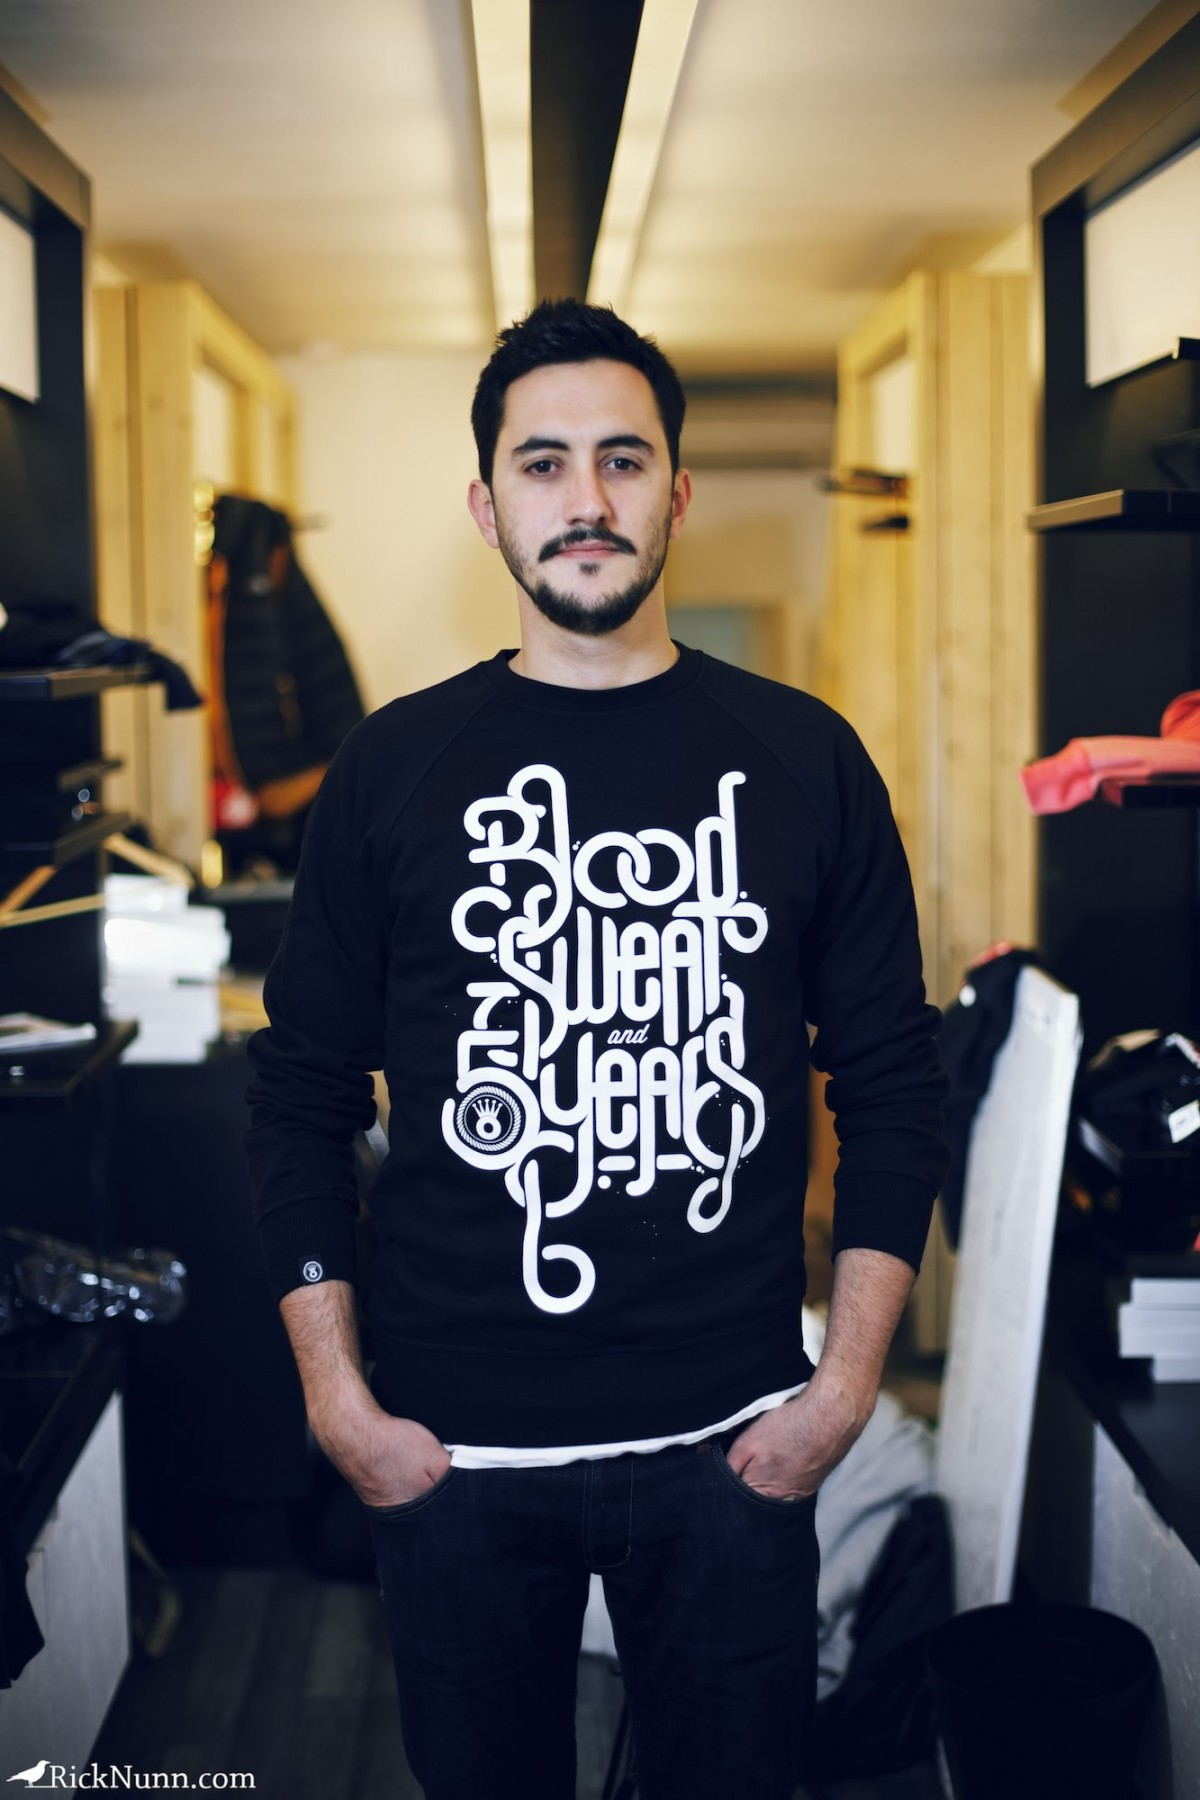 AnyForty — Spring/Summer 2013 Lookbook - Blood Sweat And 5 Years Designed By Andre Beato Photographed by Rick Nunn